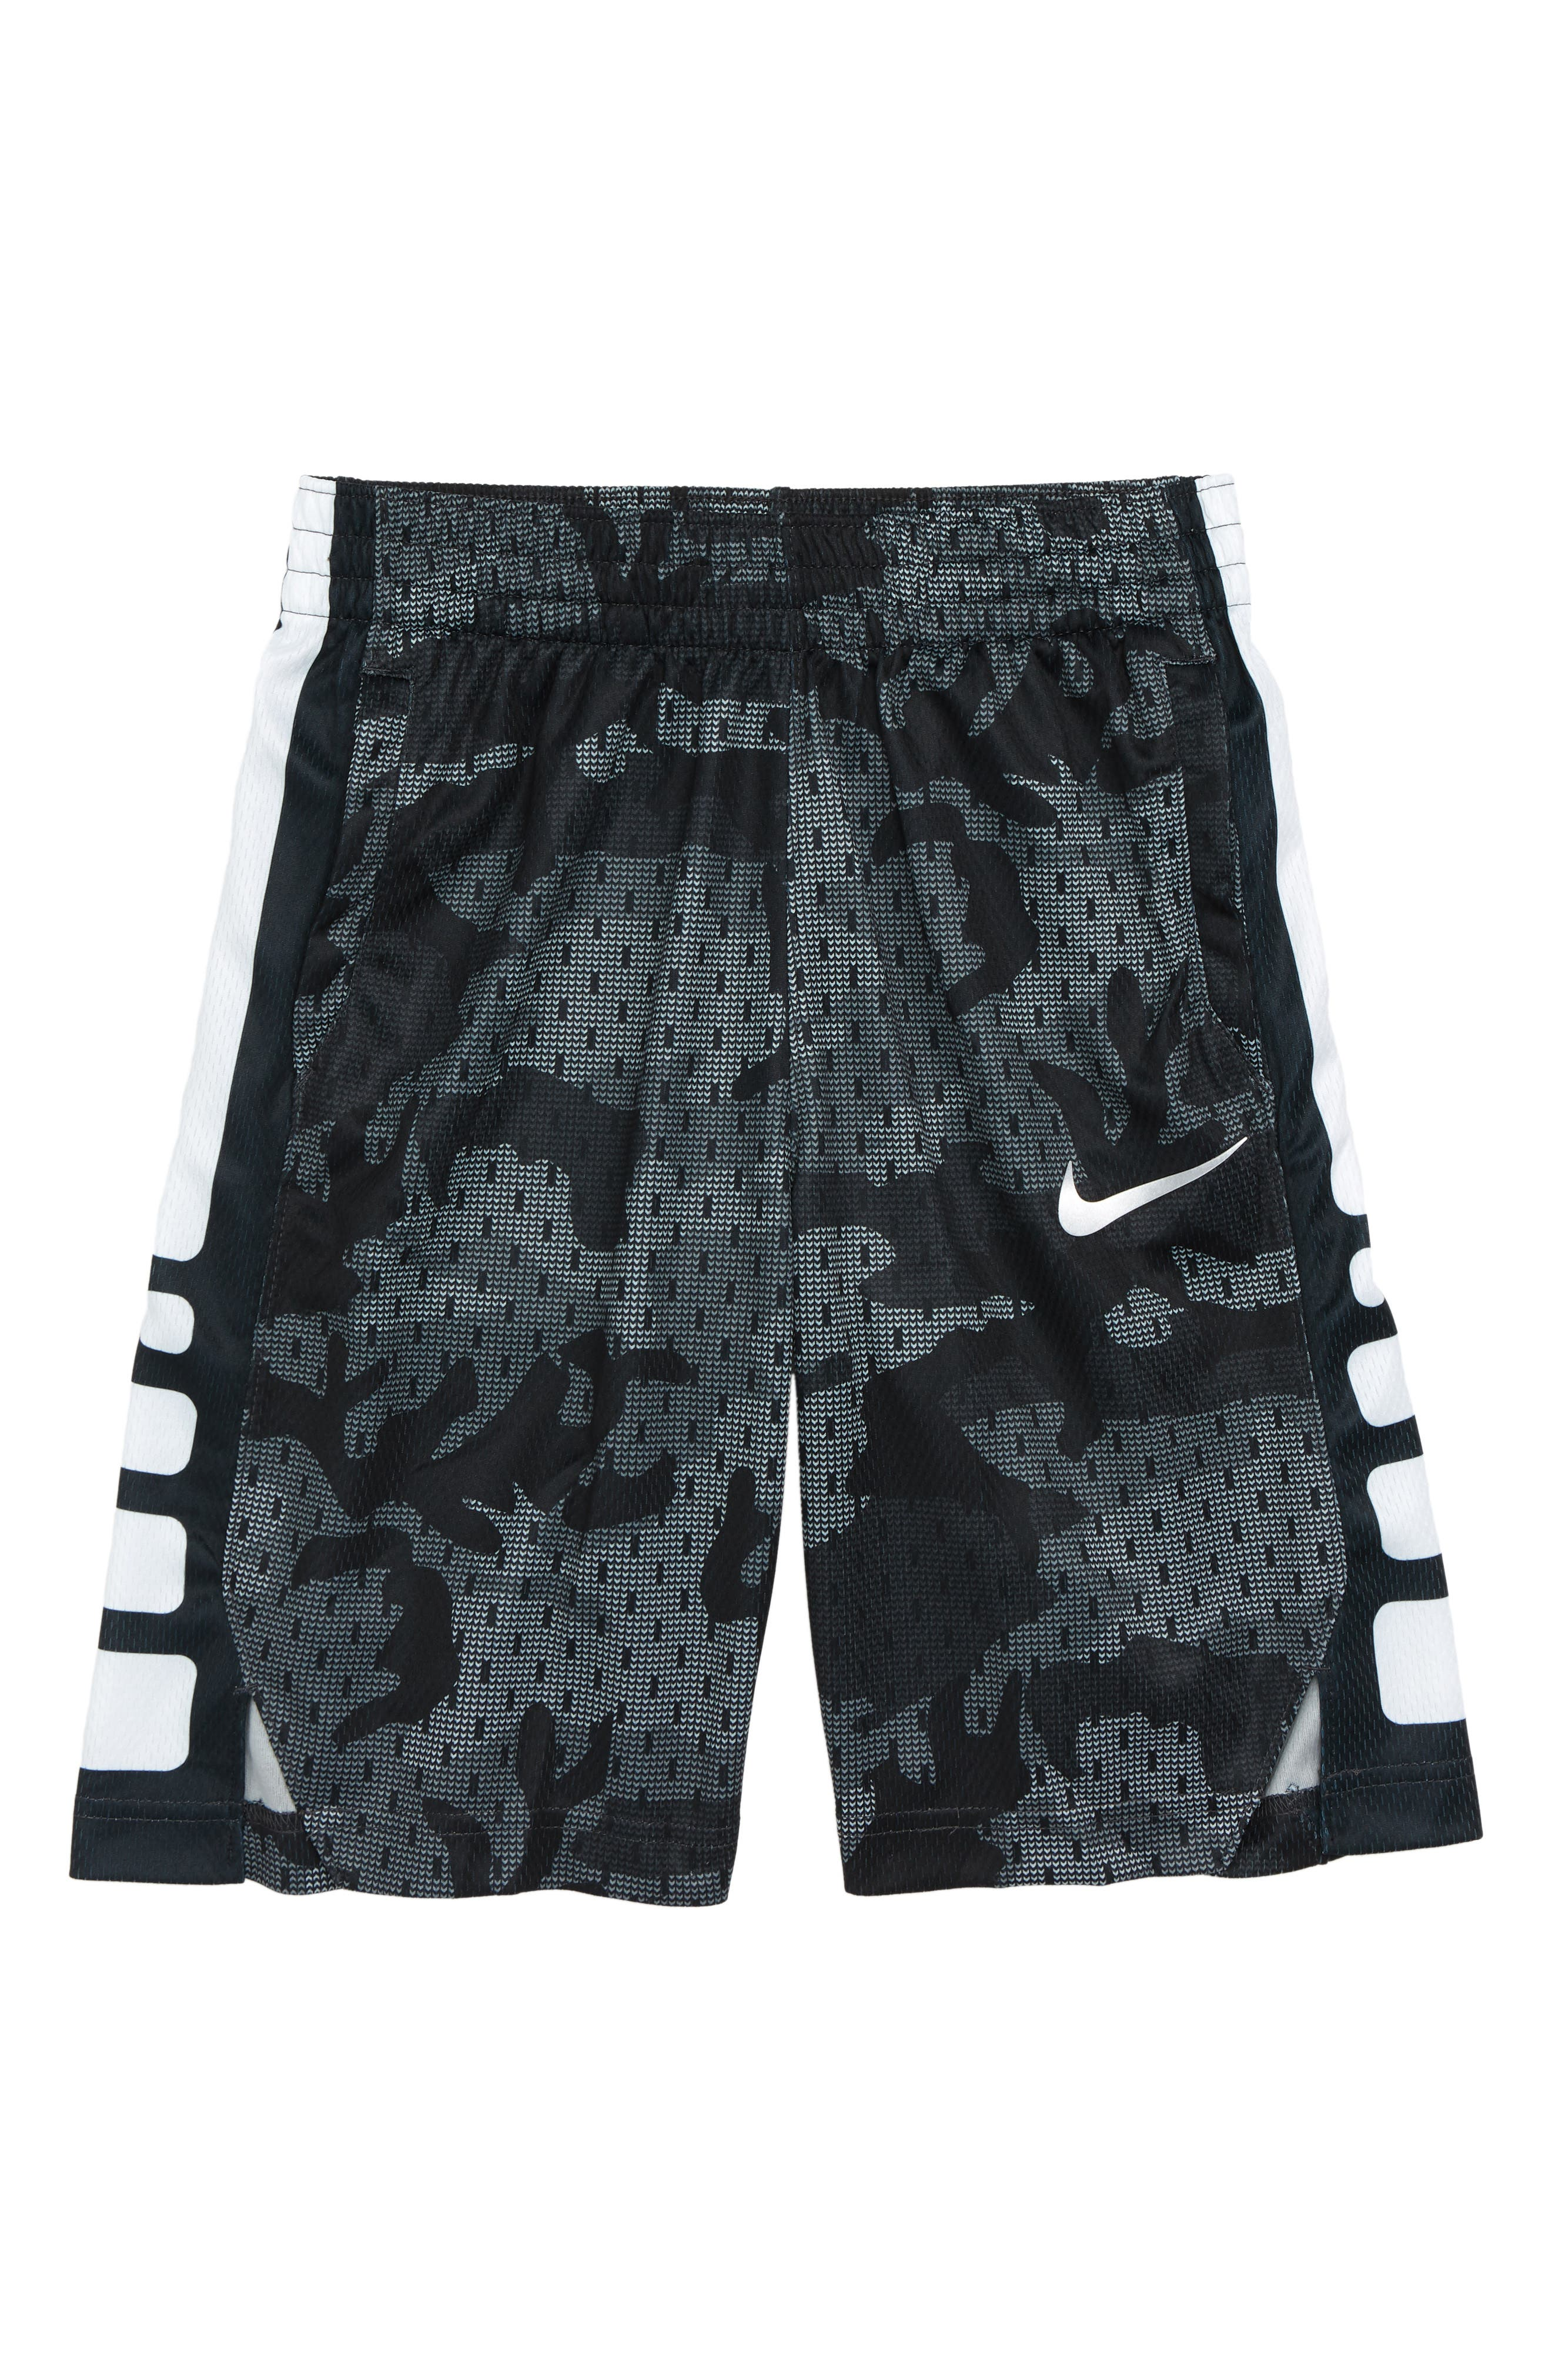 Dry Elite Basketball Shorts,                             Main thumbnail 1, color,                             WOLF GREY/ BLACK